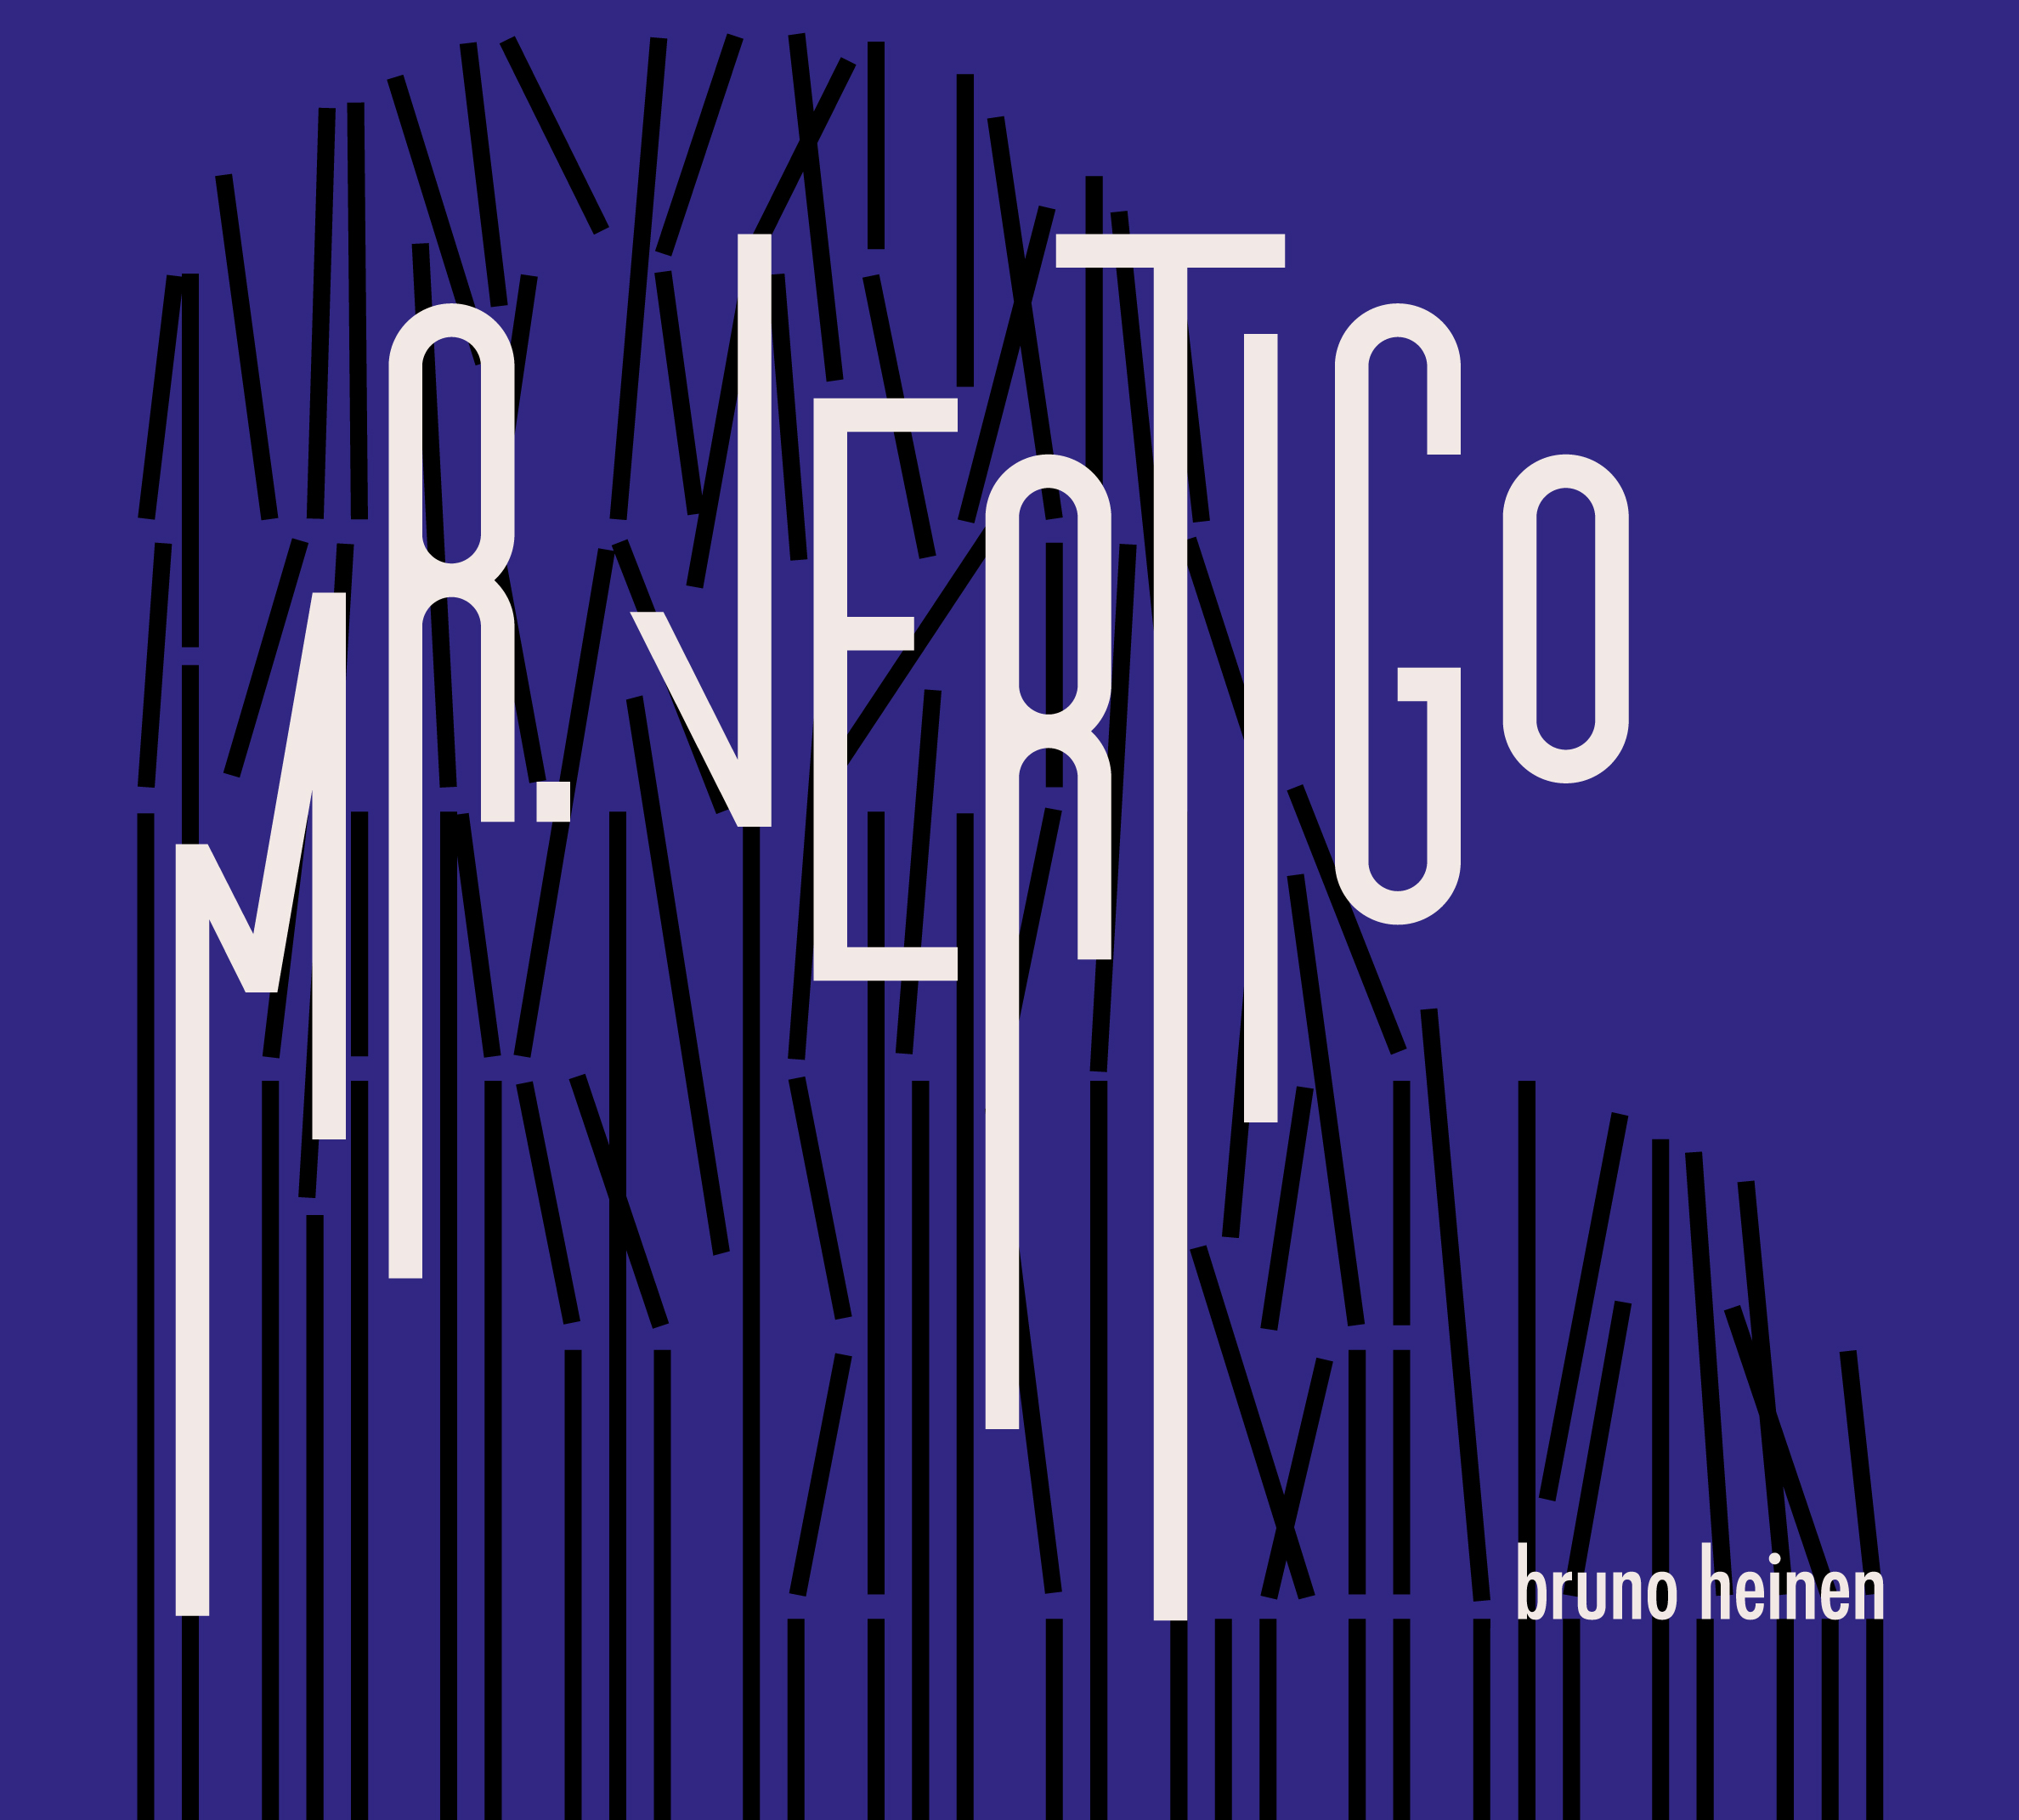 Mr. Vertigo - The debut solo album - exploring improvised counterpoint, overdubbing, rhodes and post-production effects. Original music inspired by a variety of sources, including painter Yves Klein, writer Paul Auster, and classical composers Debussy, Stockhausen and KurtágDesign by Binomi